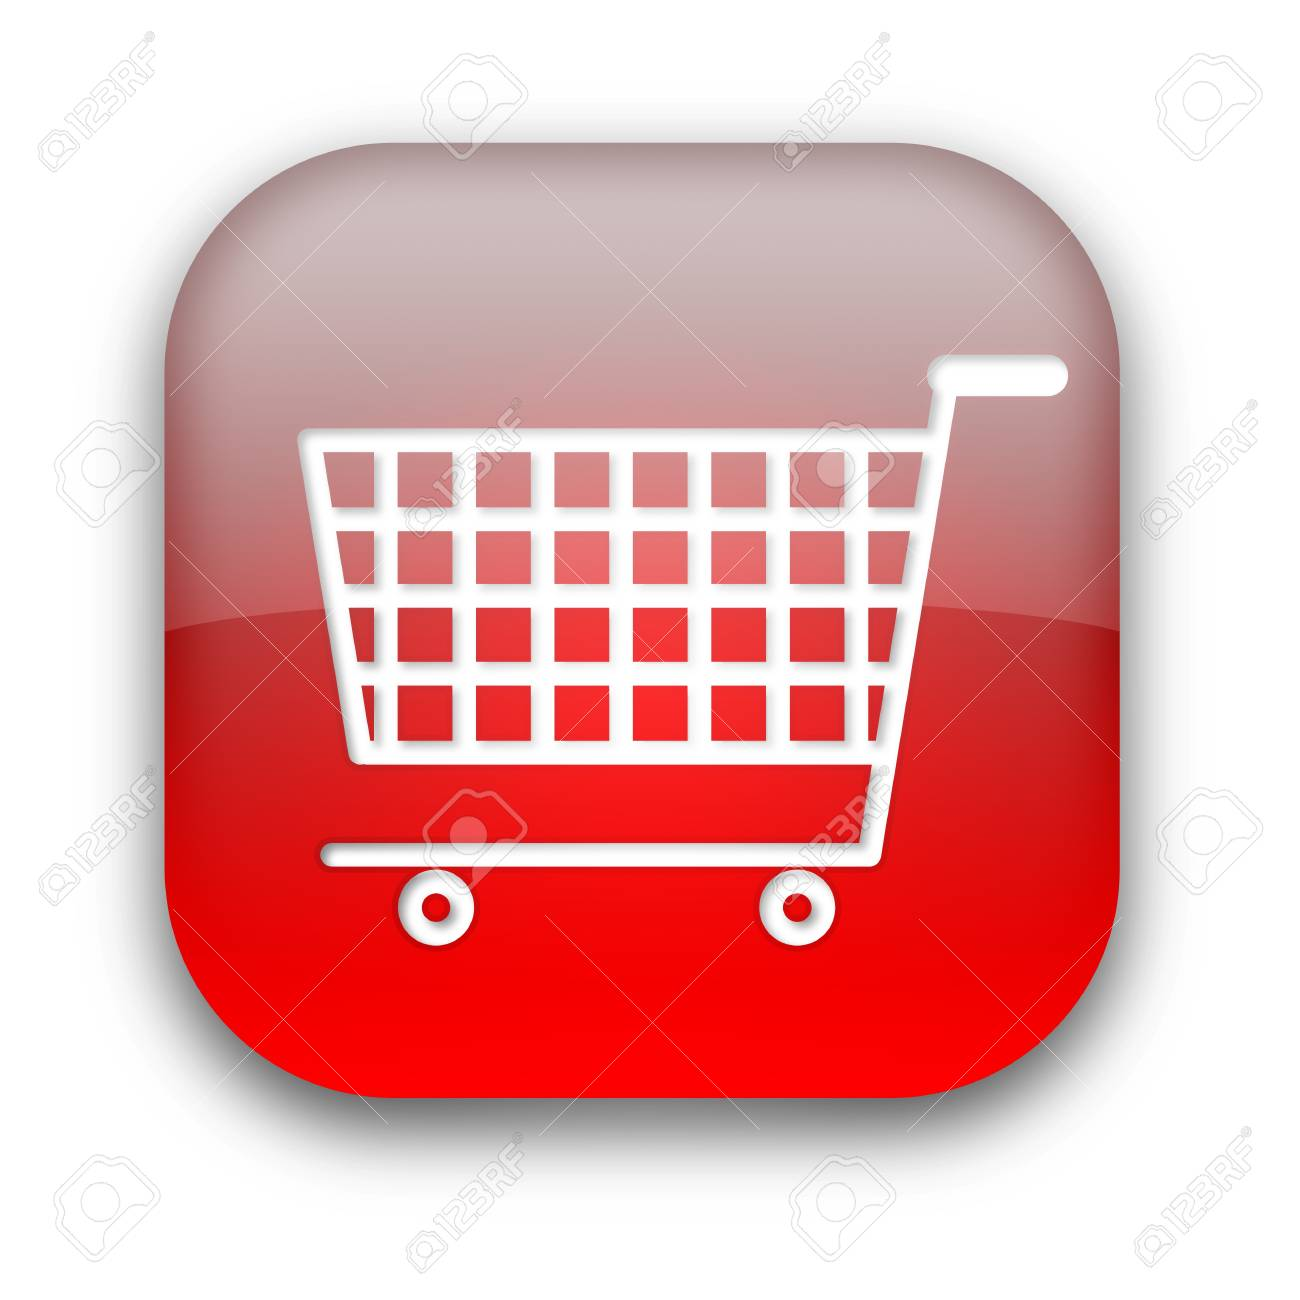 Shopping cart glossy button isolated over white background Stock Photo - 8955888